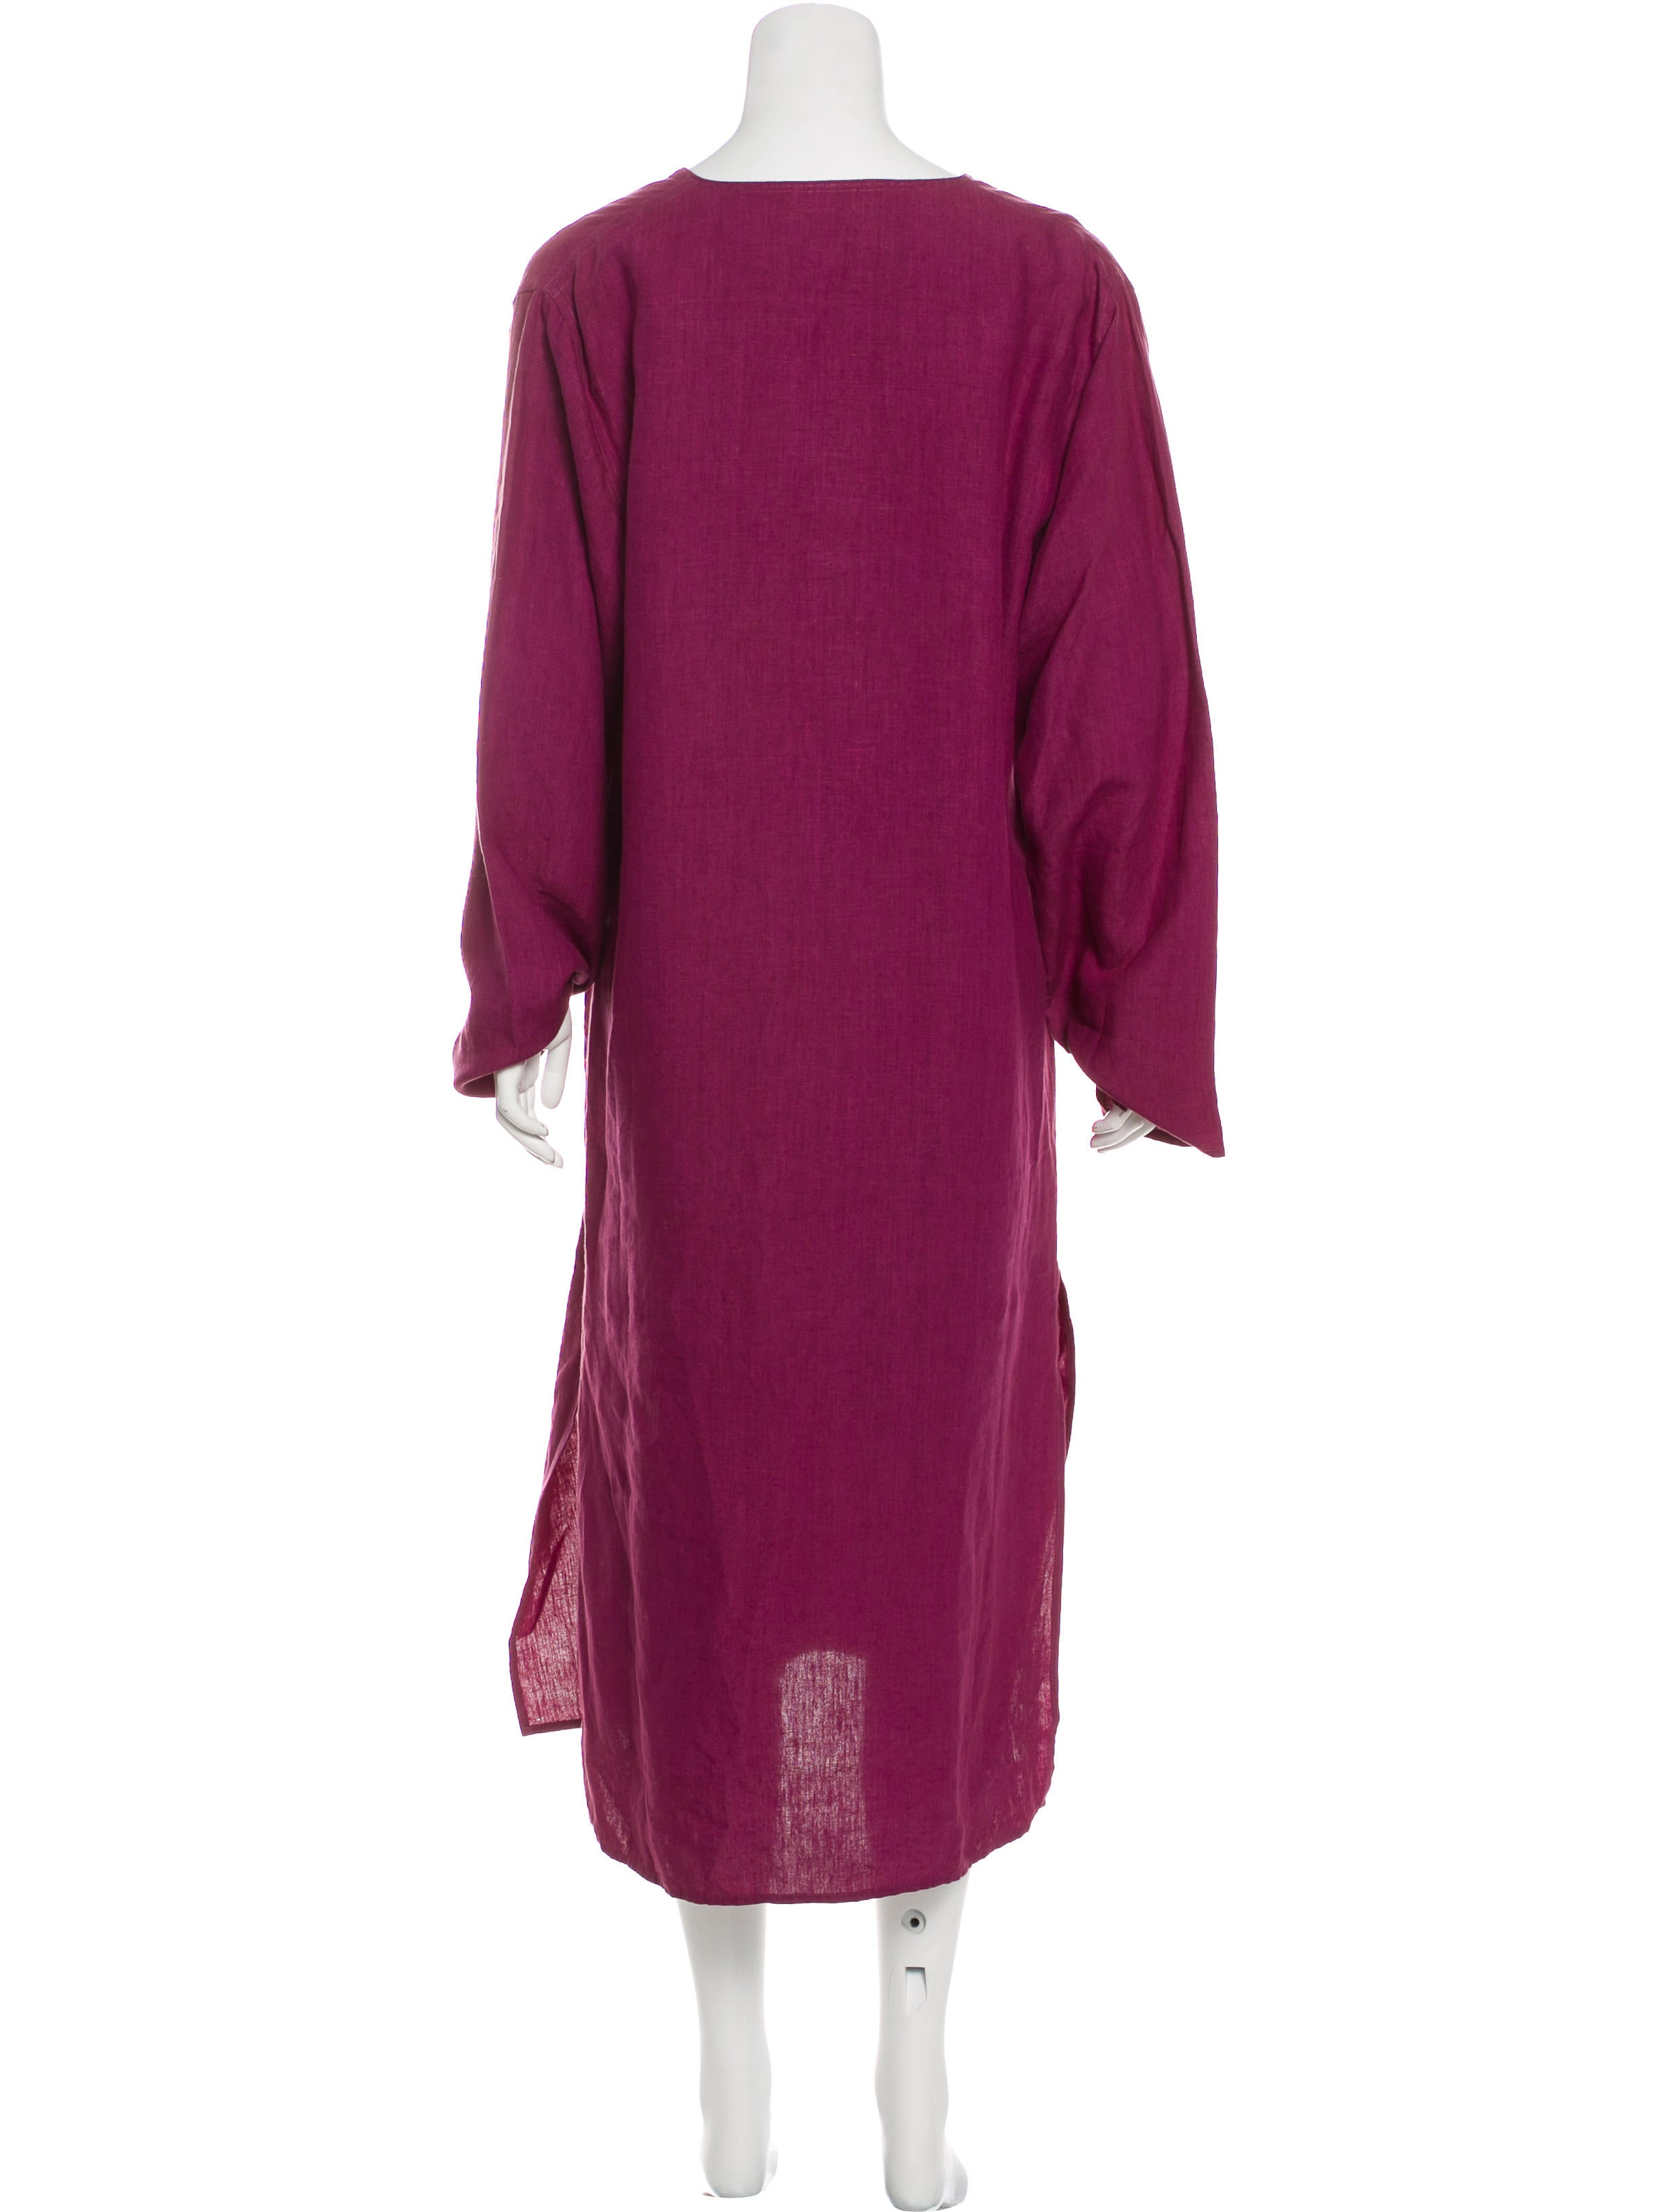 206d9d59927 Denis Colomb Long Sleeve Linen Dress w  Tags - Clothing - WDC20055 ...